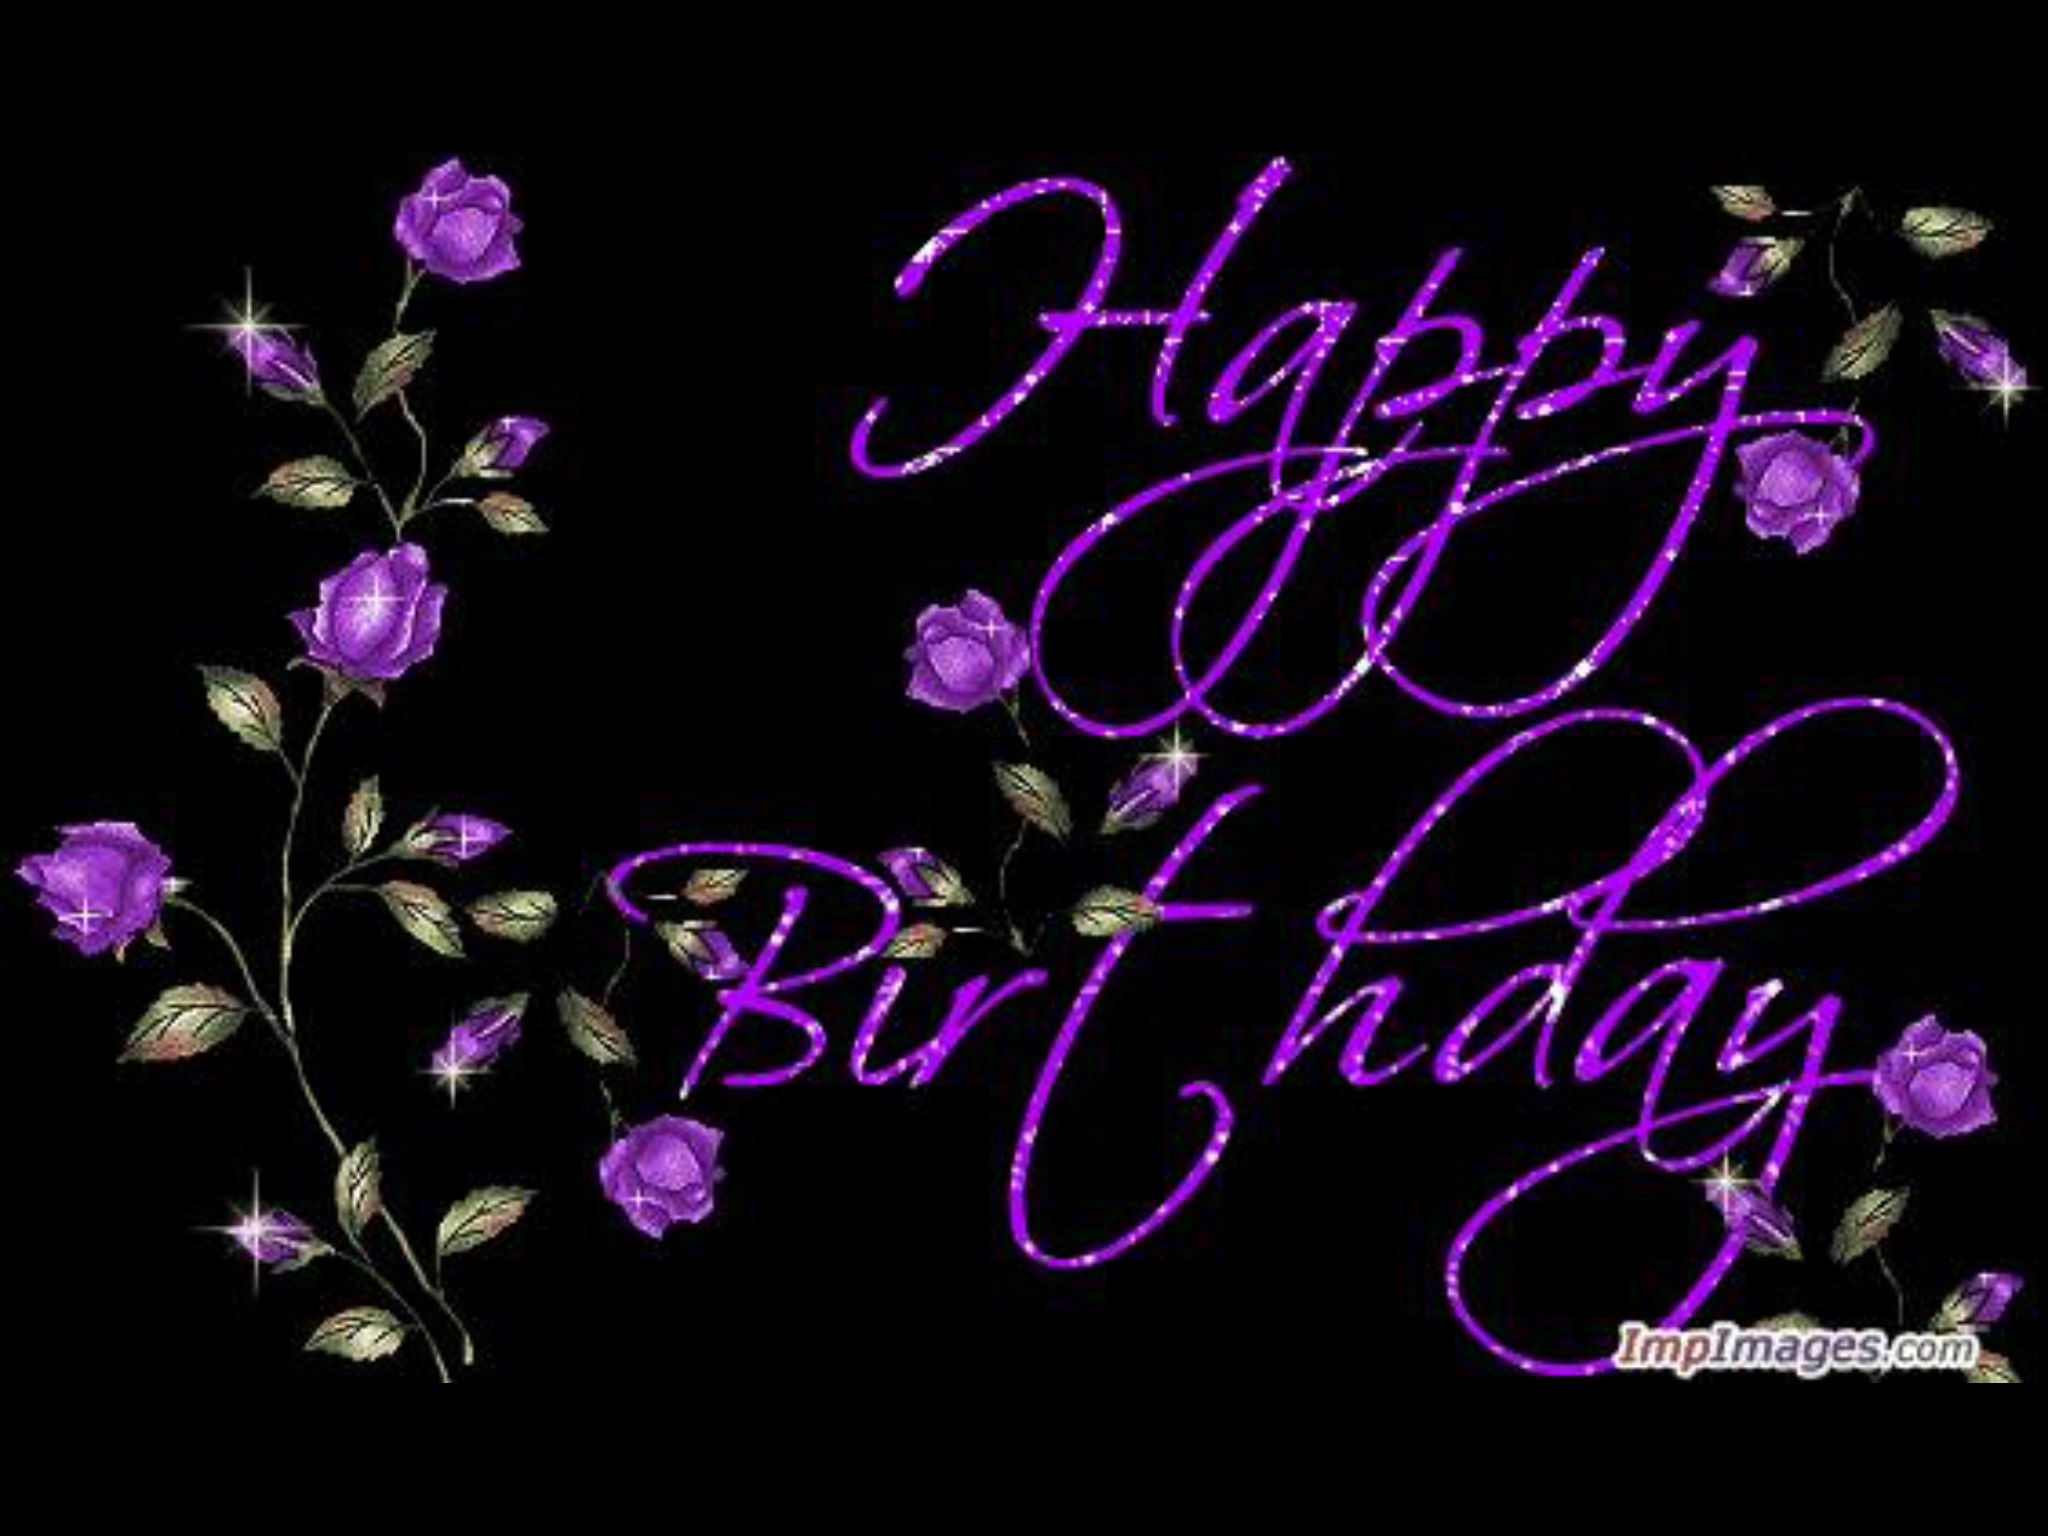 Pin By Darlene Smith On Online Greetings Pinterest